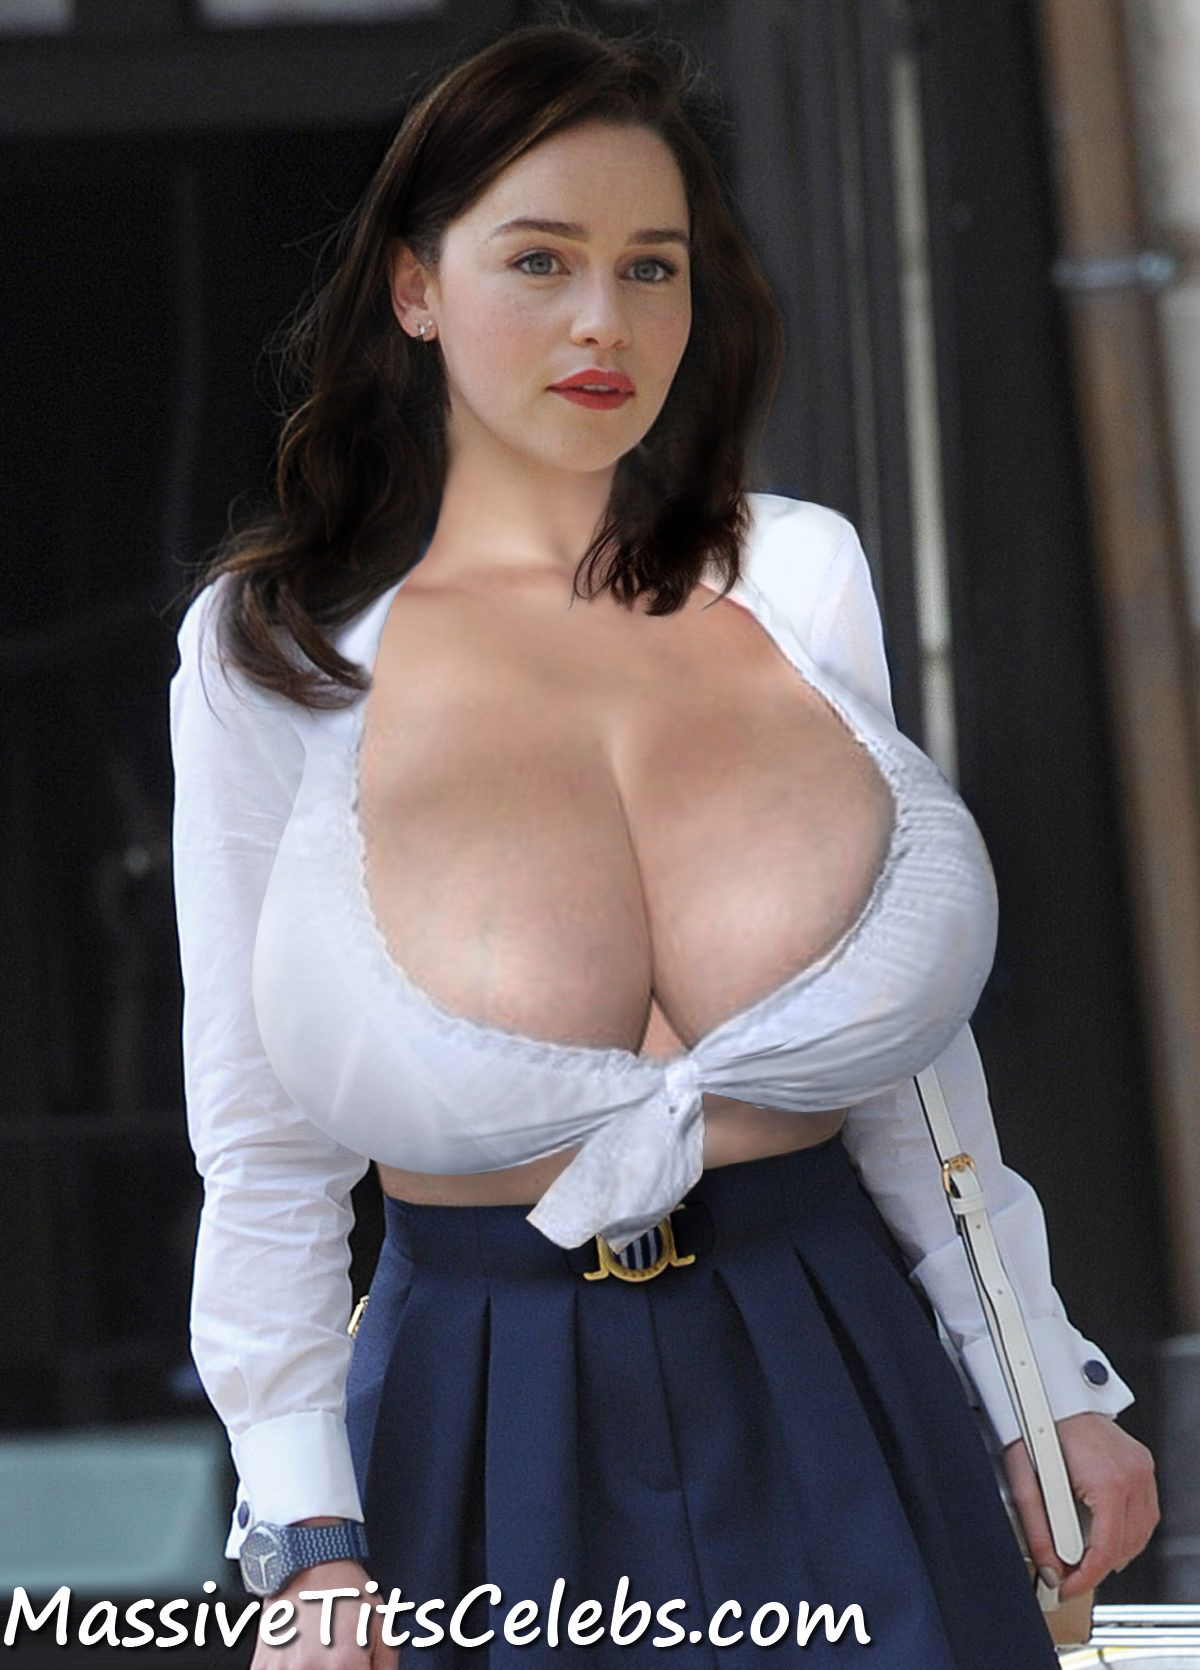 game-of-thrones-big-boobs-expansion-1